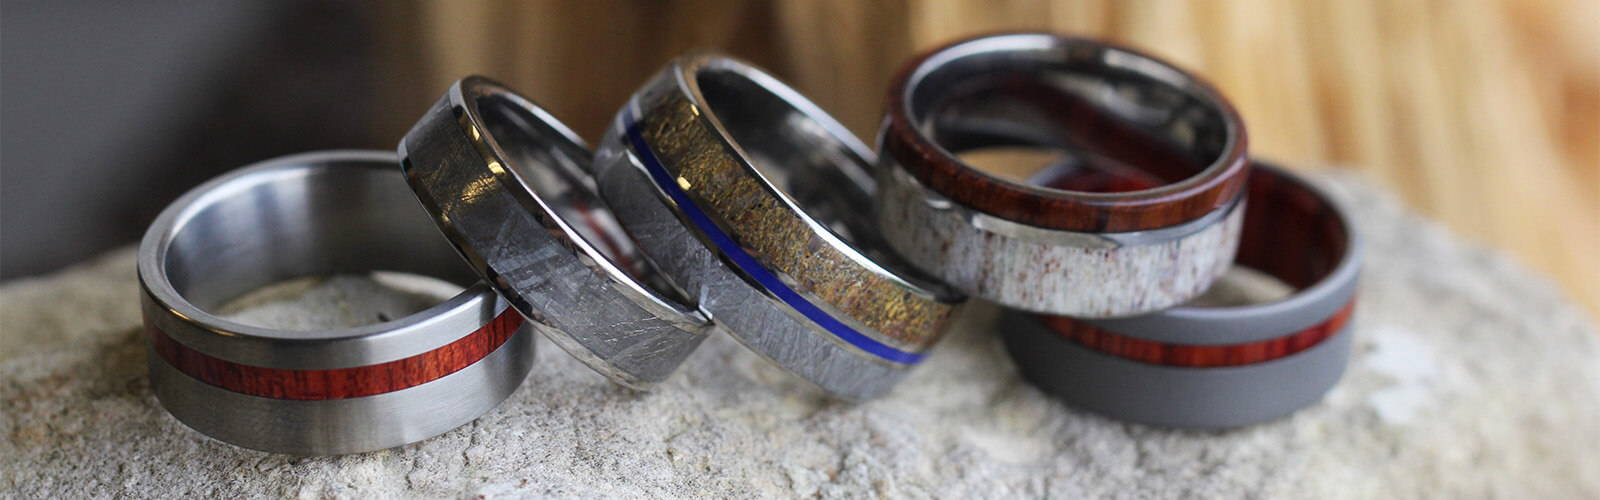 Metals Education - Jewelry by Johan